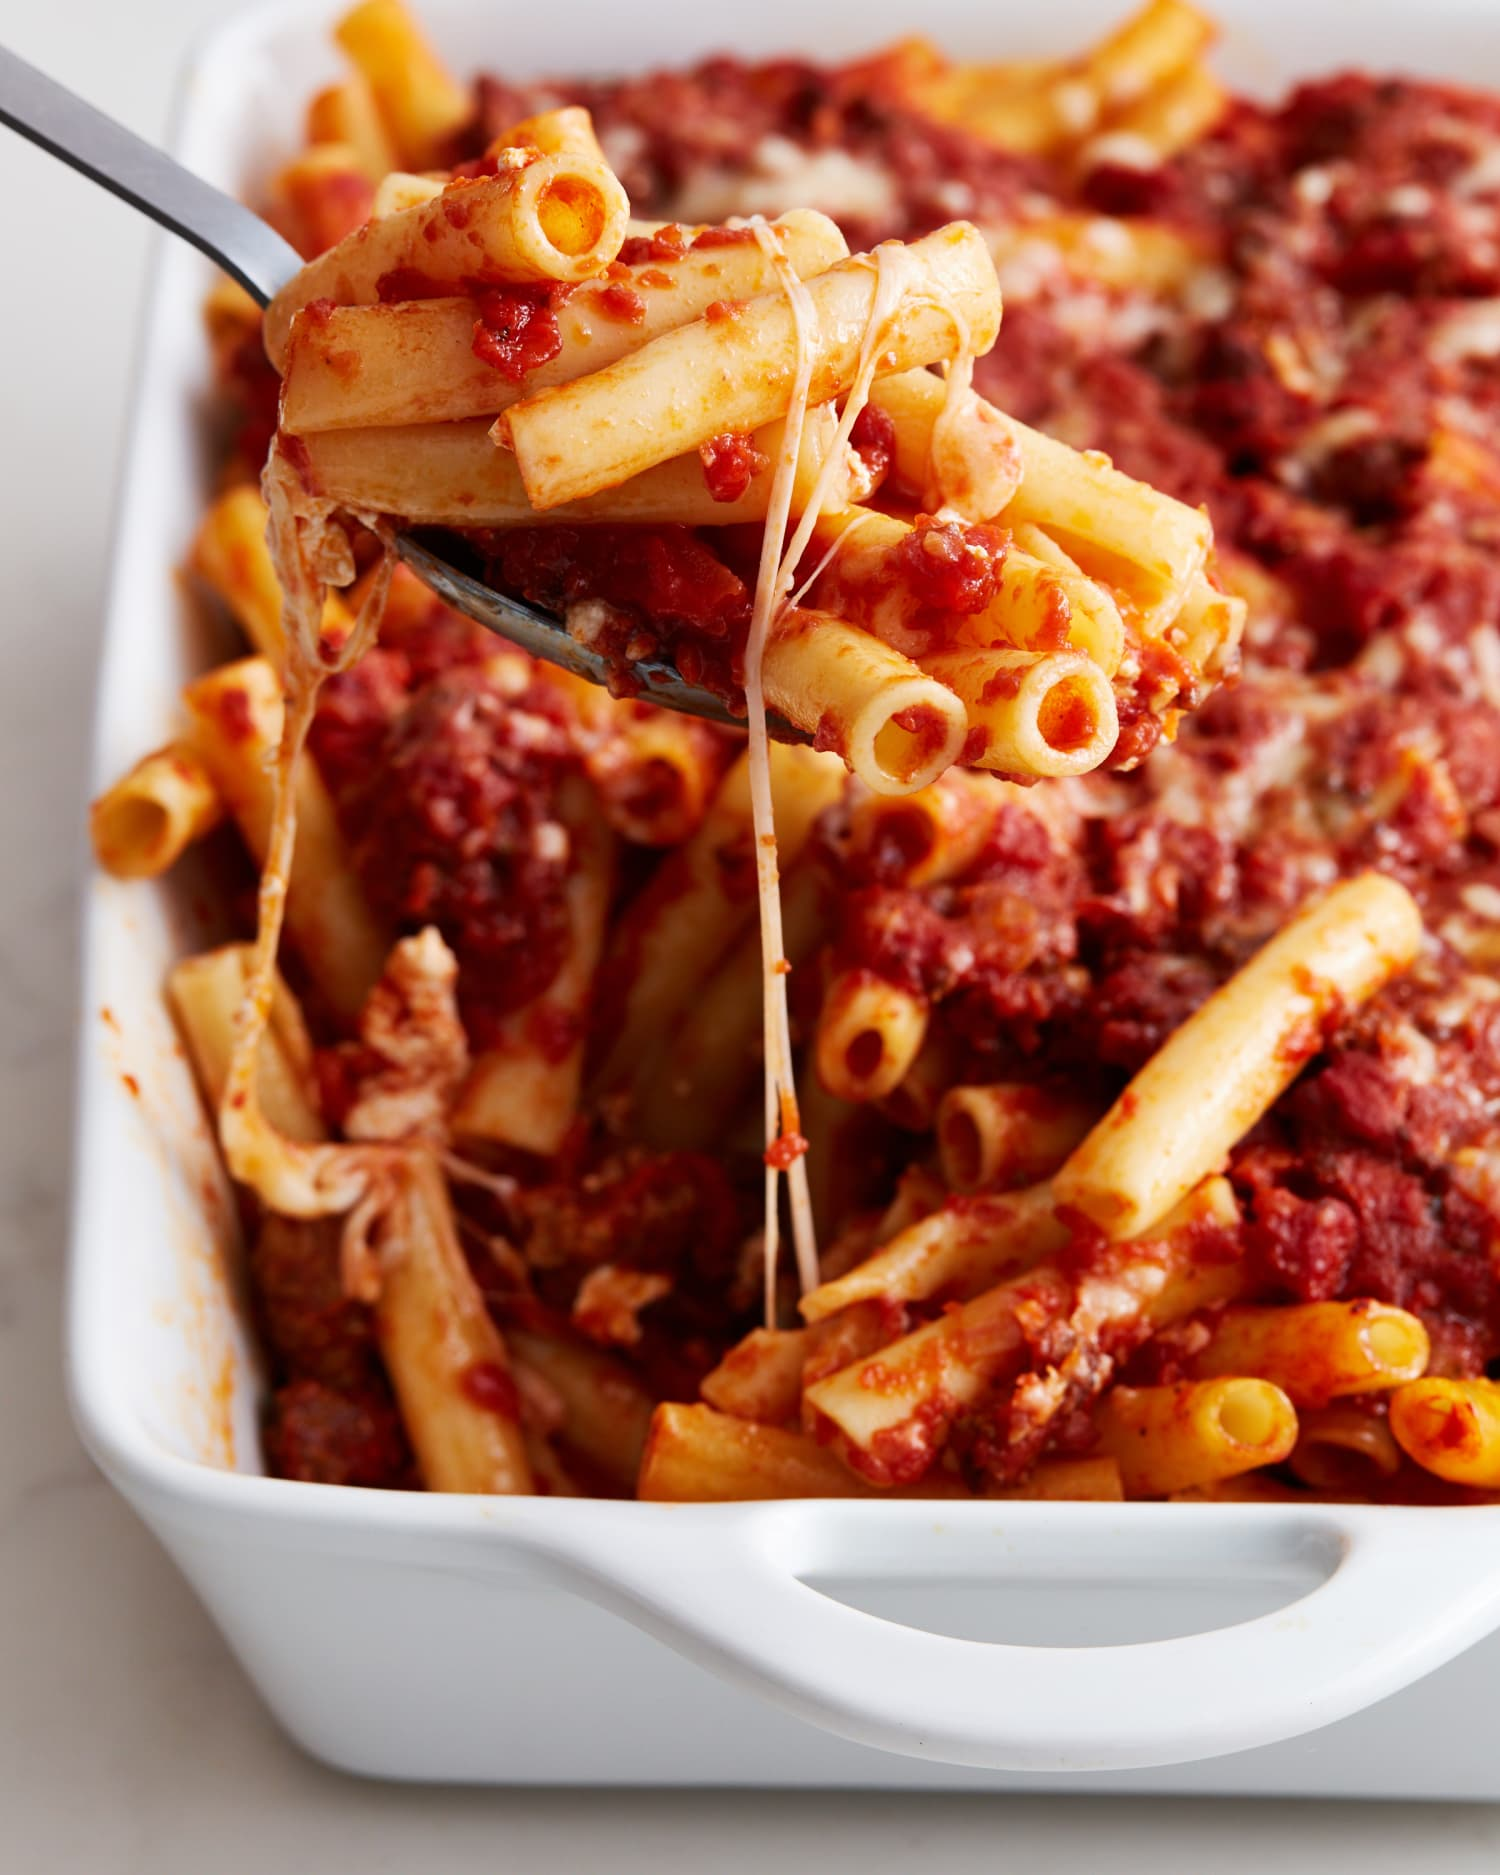 This Soprano's-Inspired Baked Ziti Recipe Is as Good as You'd Expect